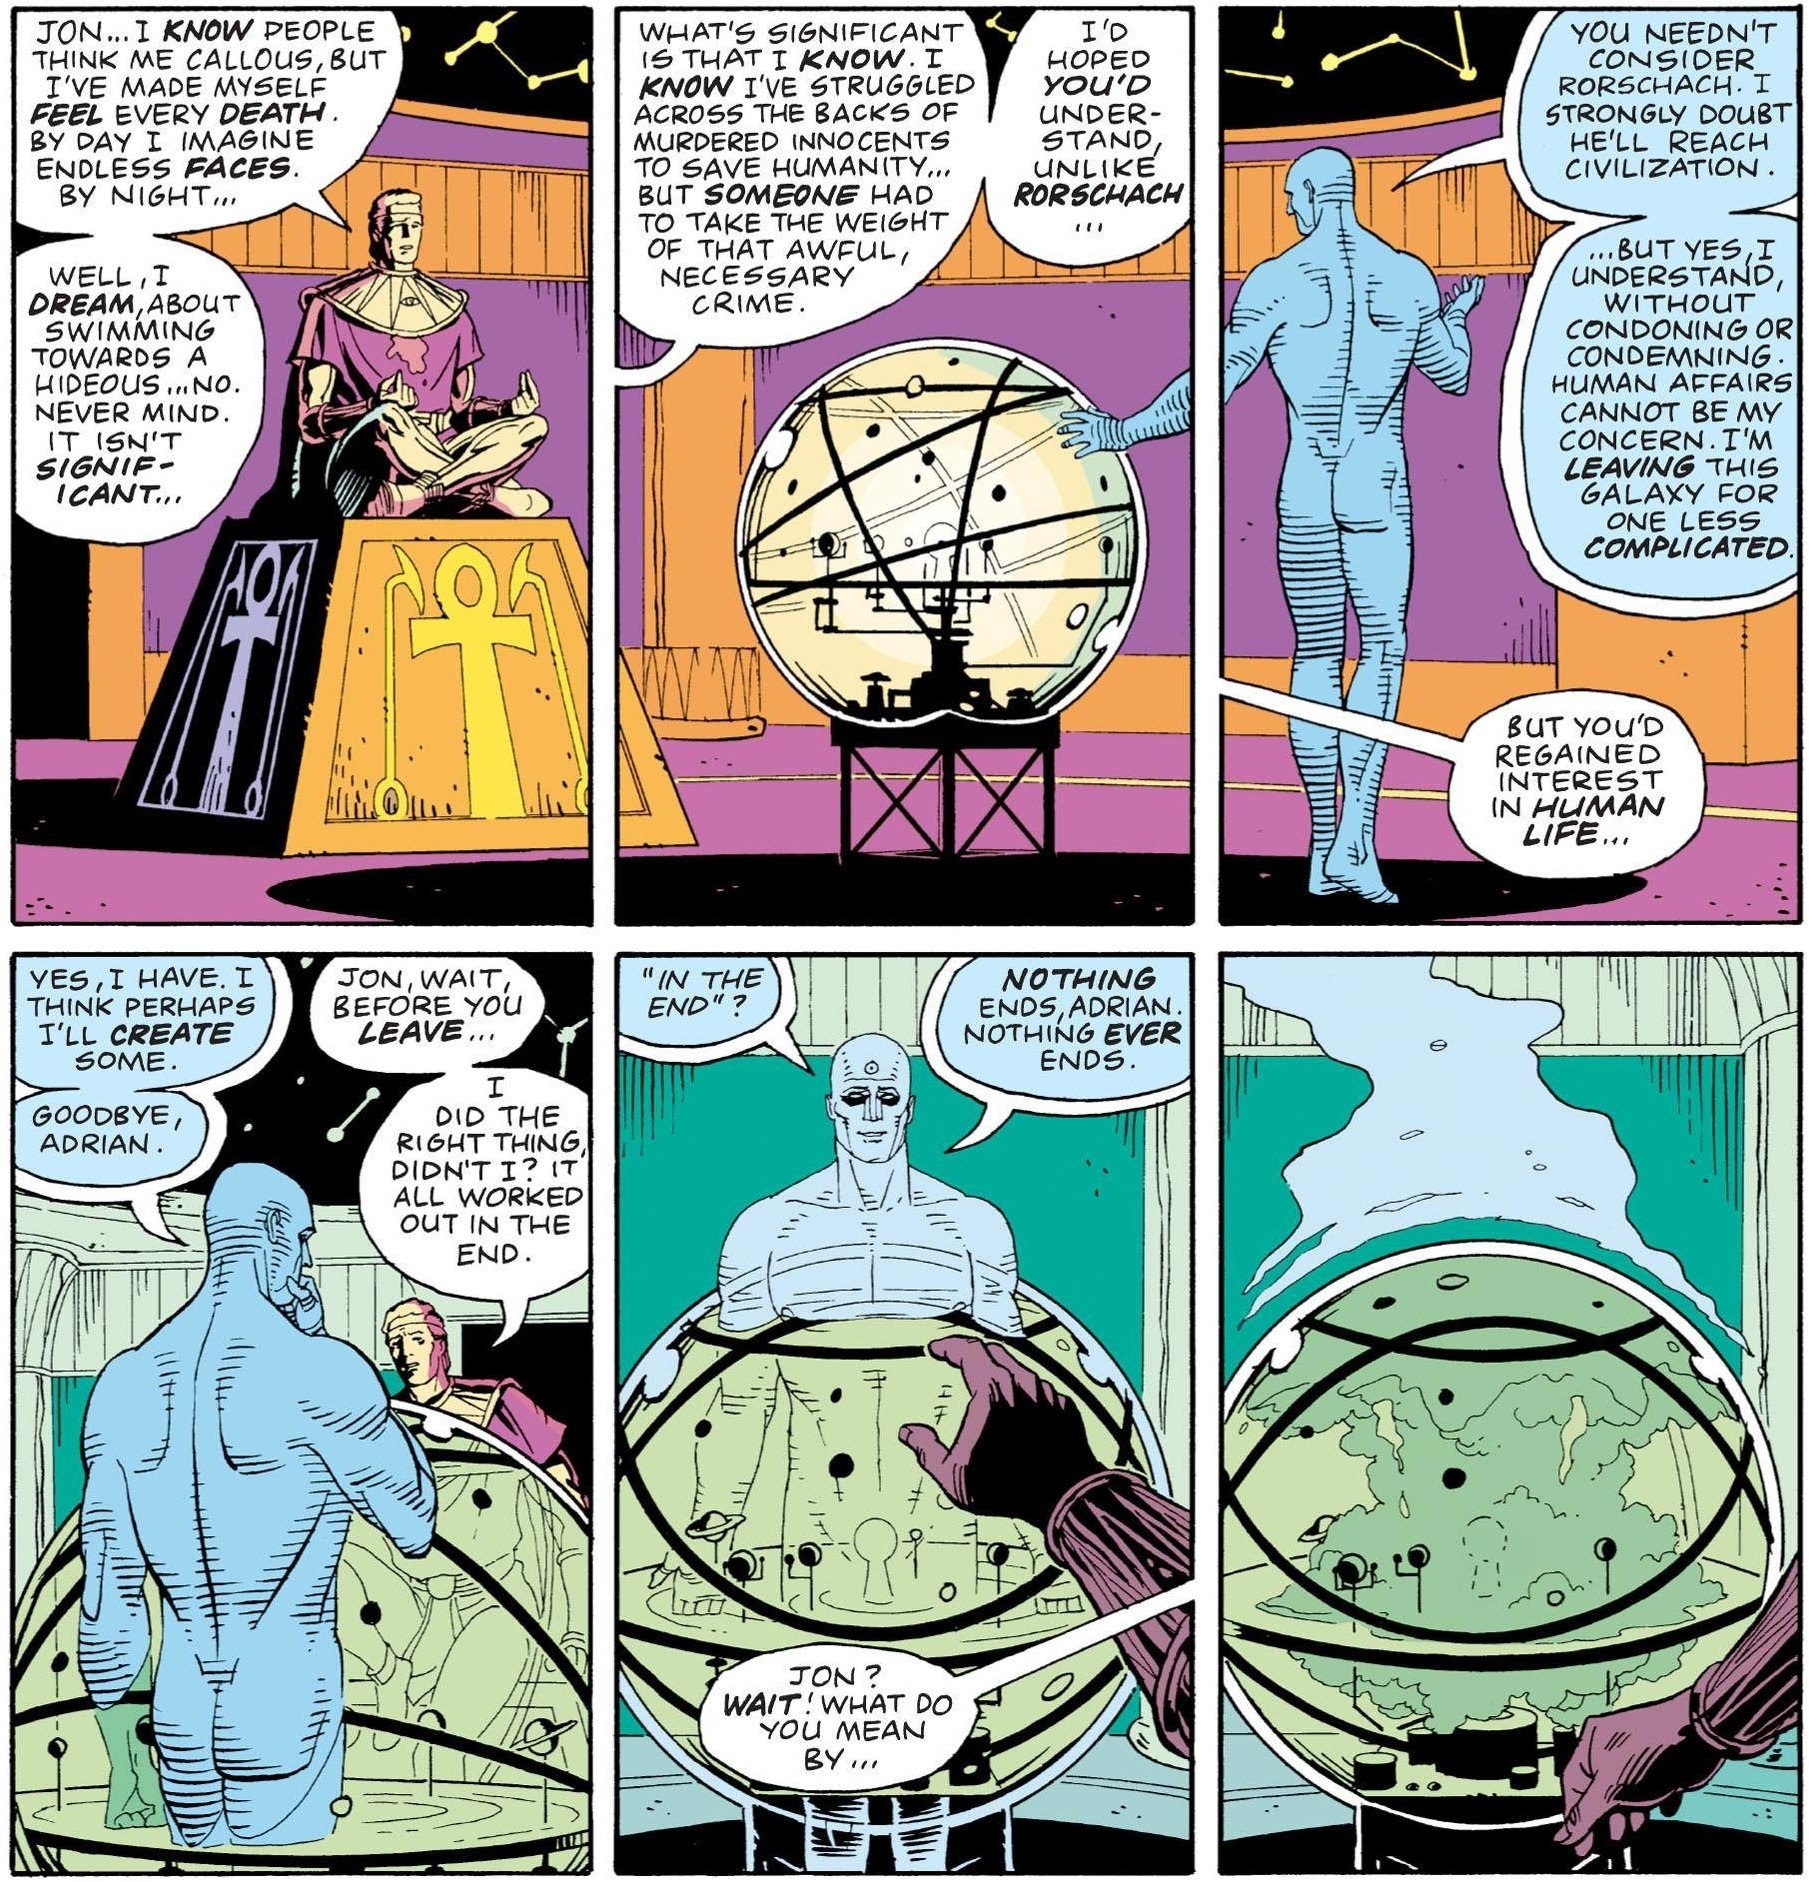 doctor manhattan create some people